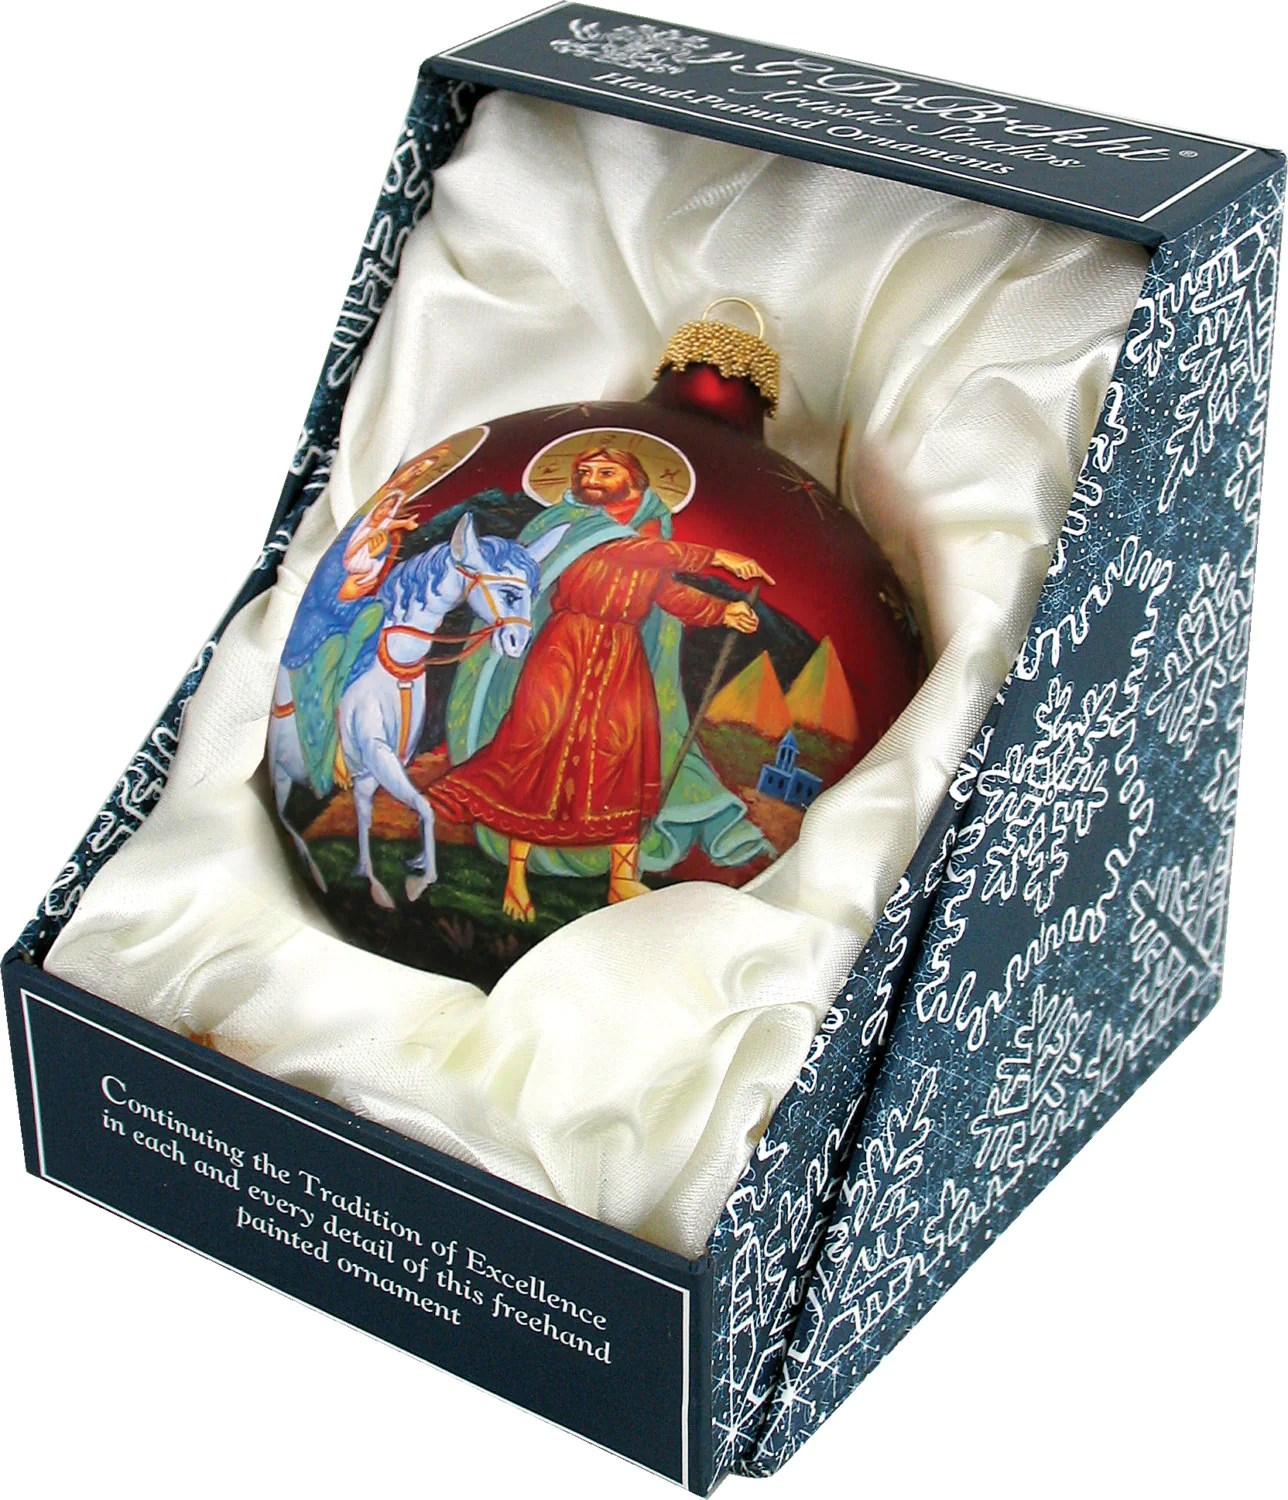 Nativity Ornament Handcrafted Old World Christmas Limited